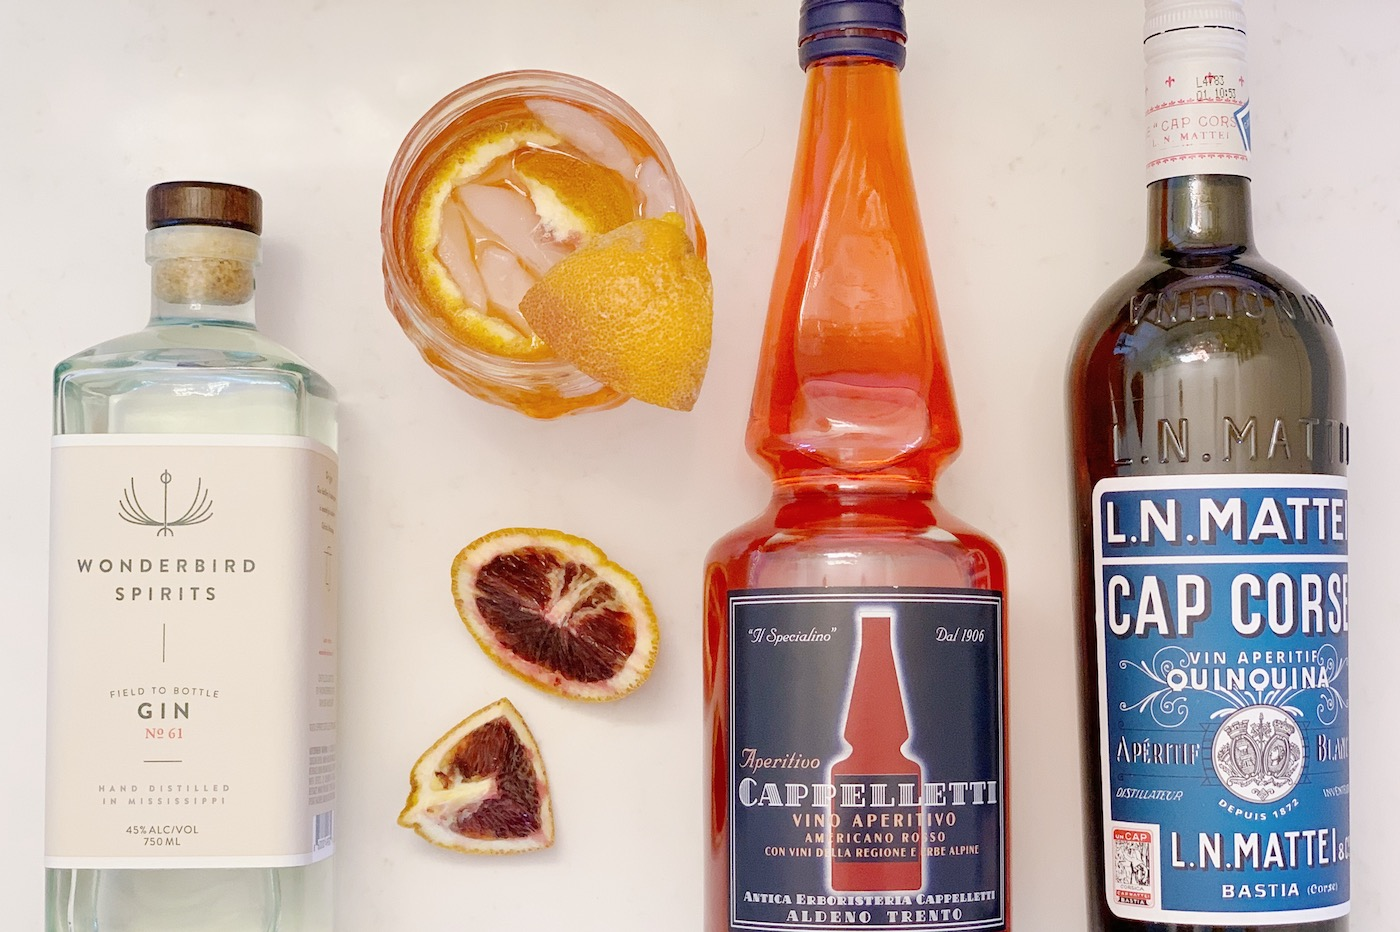 The New Negroni made with Wonderbird Gin, Cappelletti, and Cap Corse